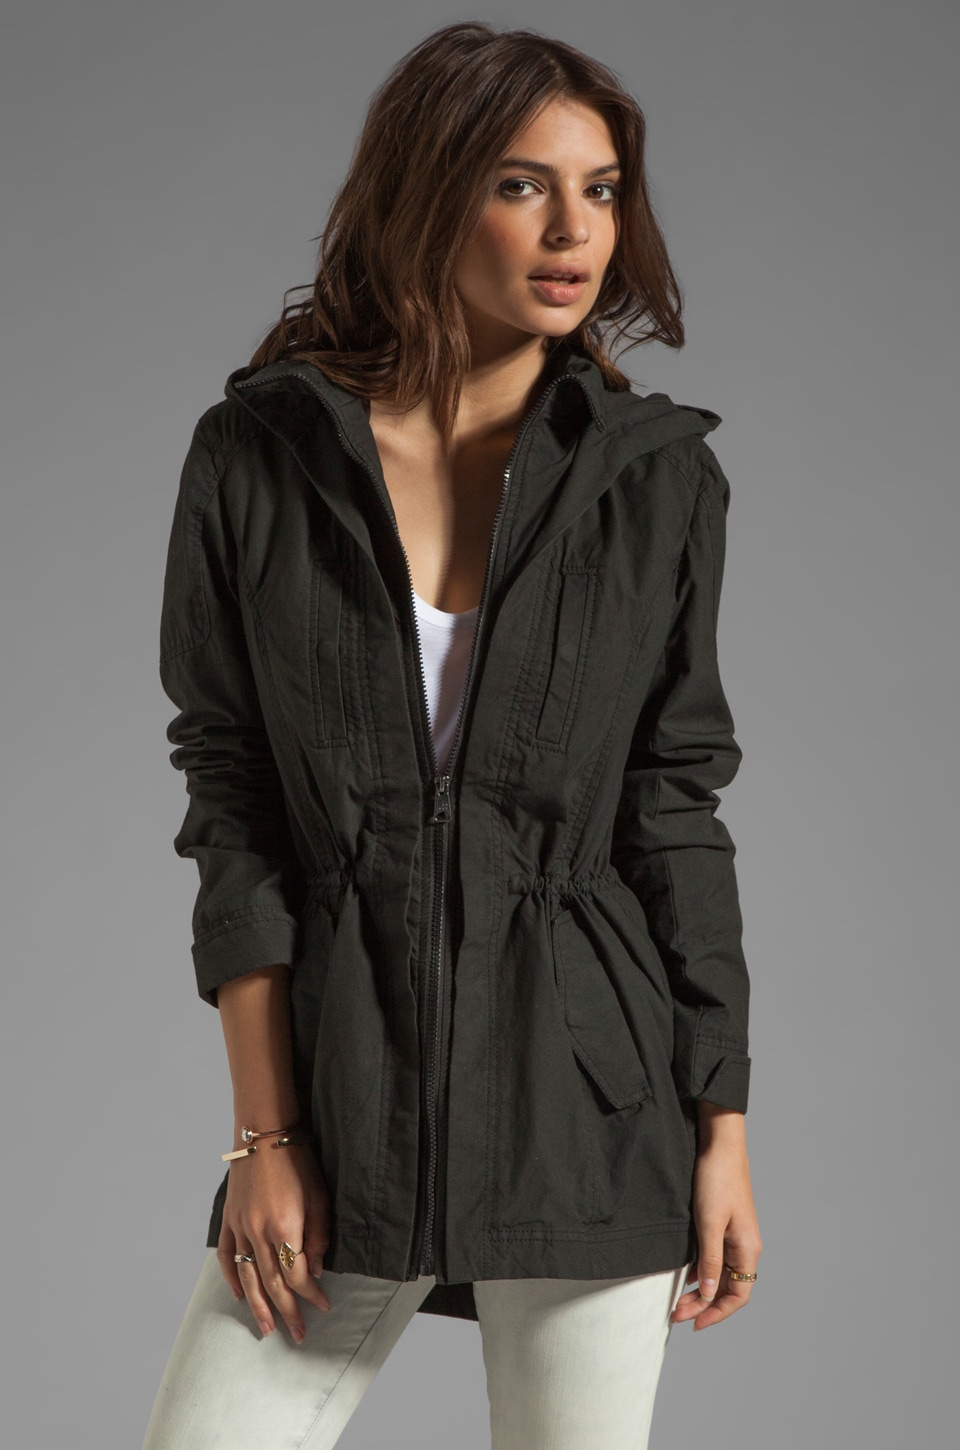 Soia & Kyo Perni Trench Jacket in Black